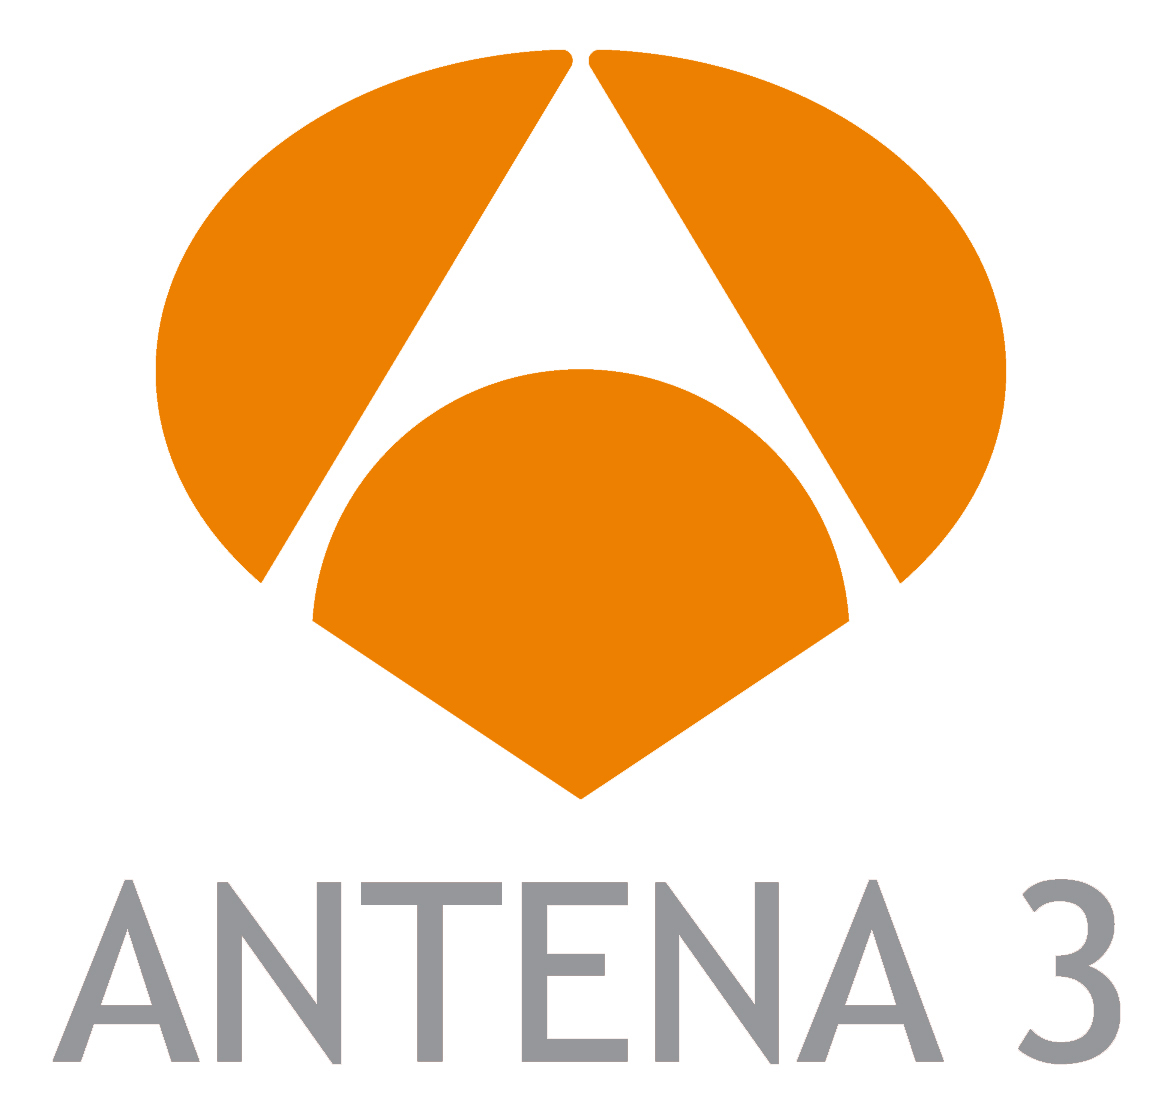 antena 3 tv live online antena 3 tv channel streaming on internet and ...